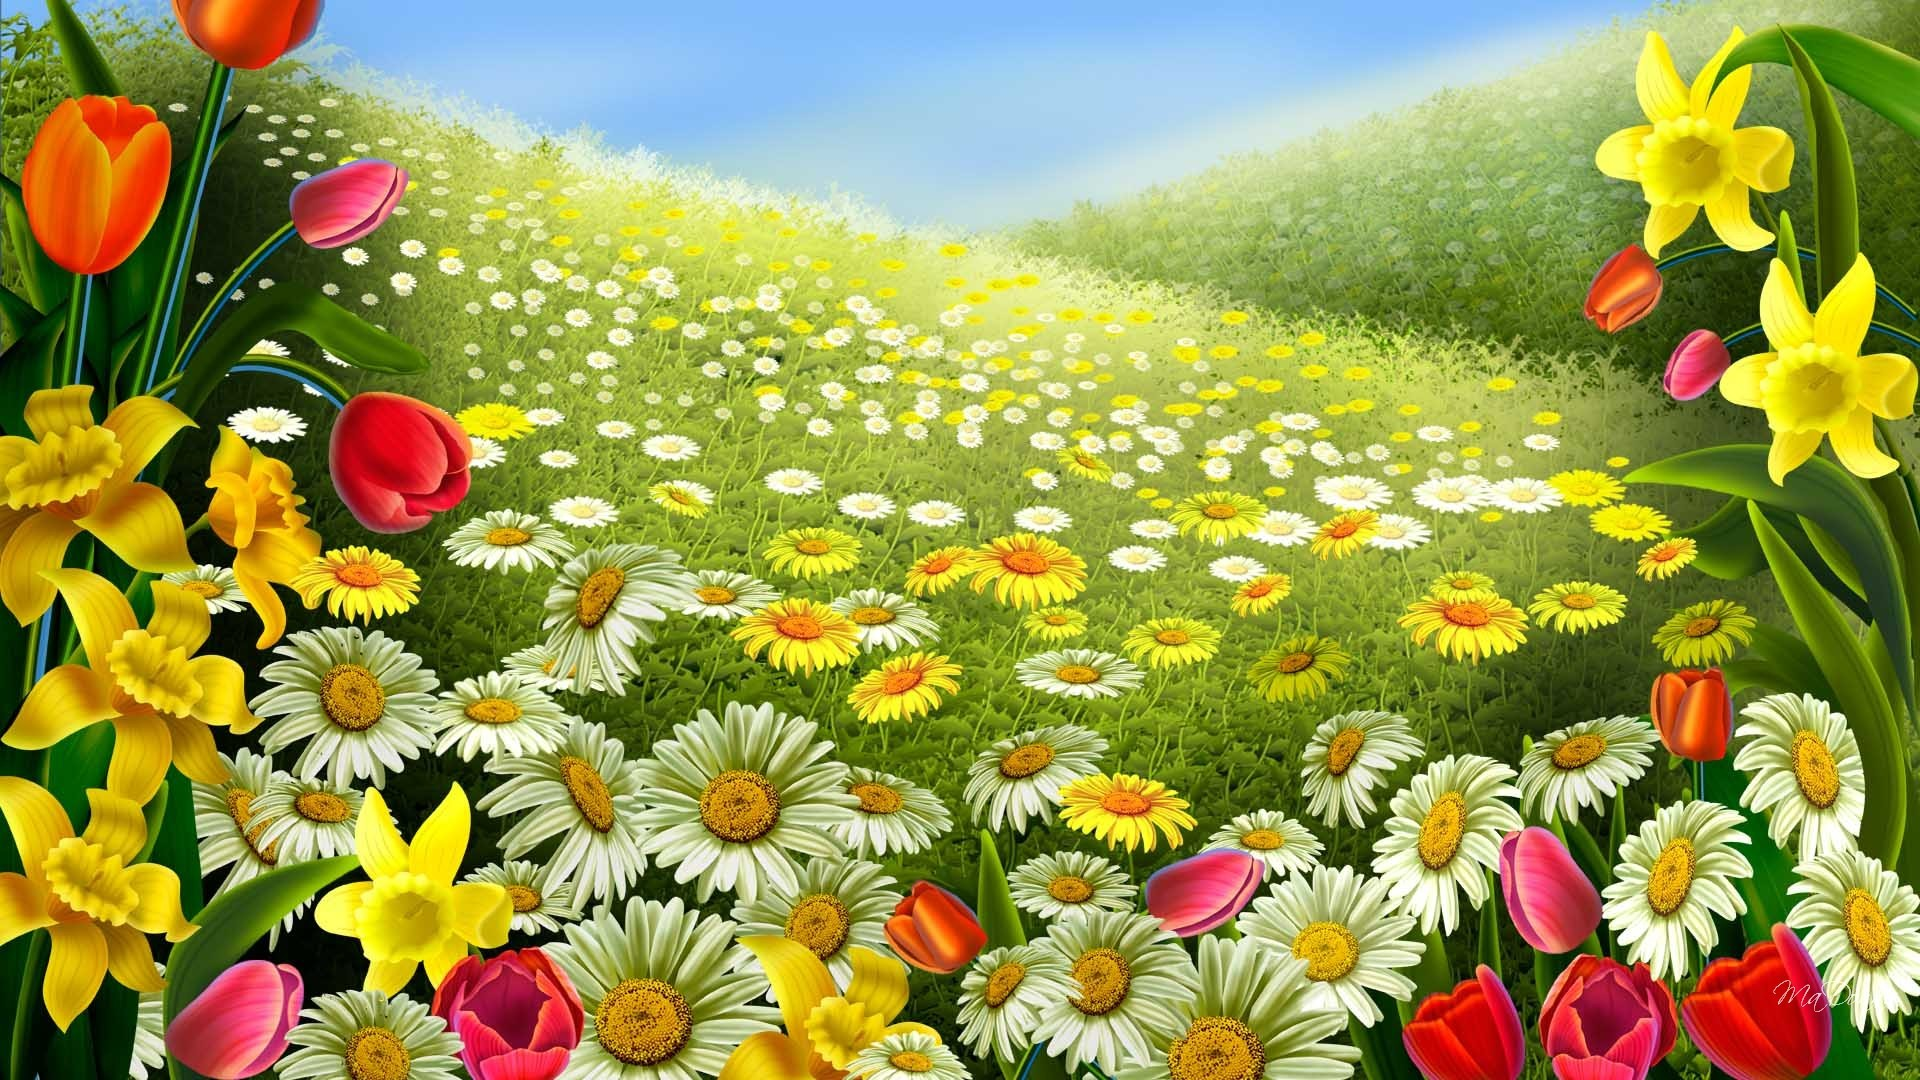 Beautiful Pictures of Springtime | Spring Beautiful Flowers Wallpaper |  Free Desk Wallpapers